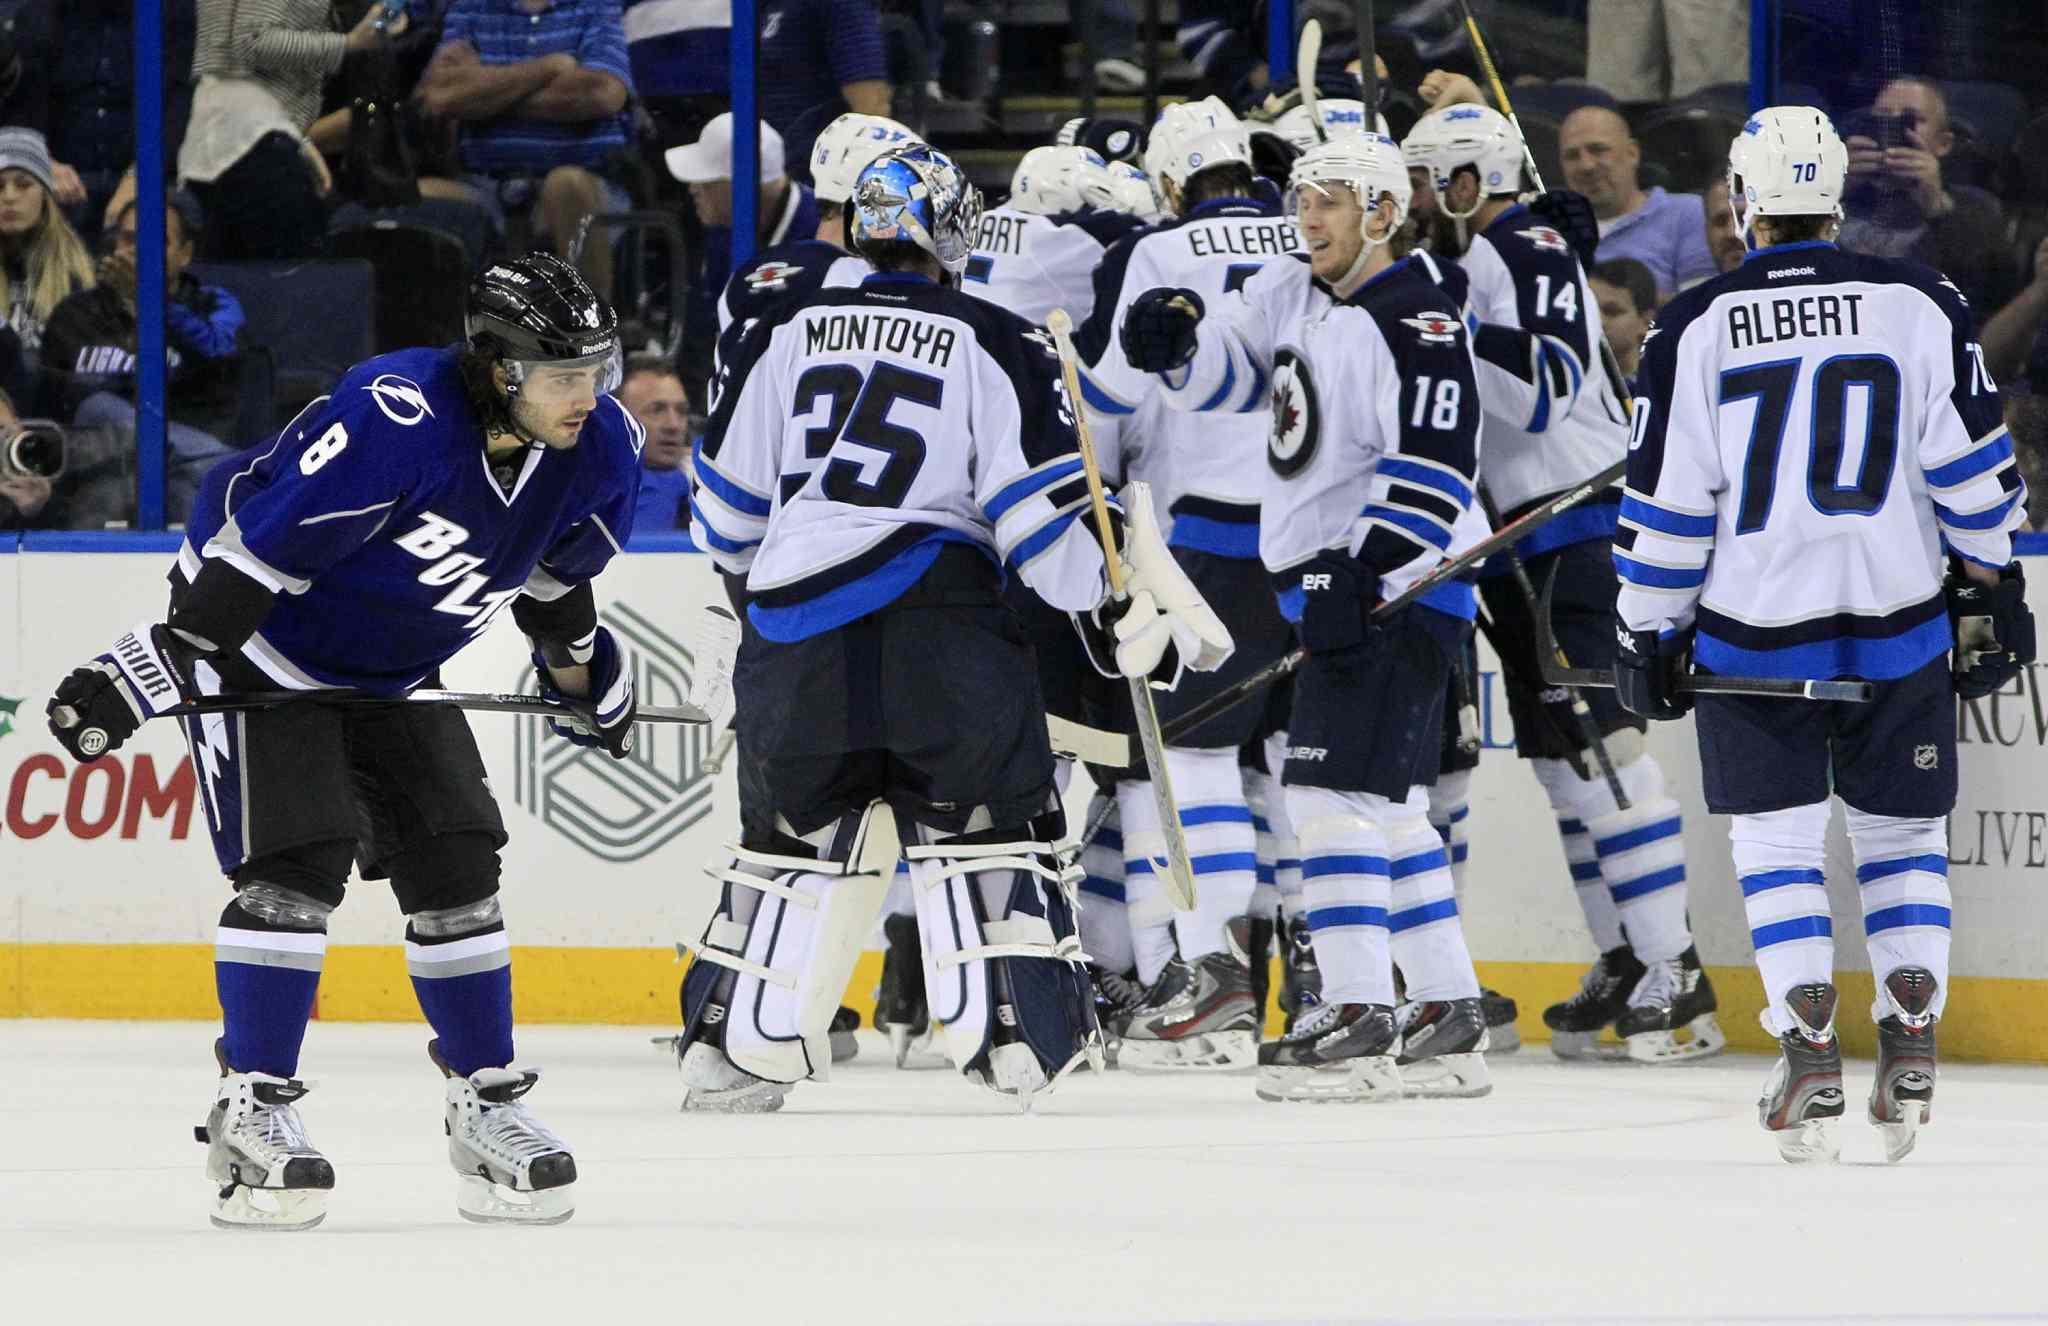 The Tampa Bay Lightning's Mark Barberio (left) skates off as the Winnipeg Jets celebrate their game-winning overtime goal for a 2-1 win.